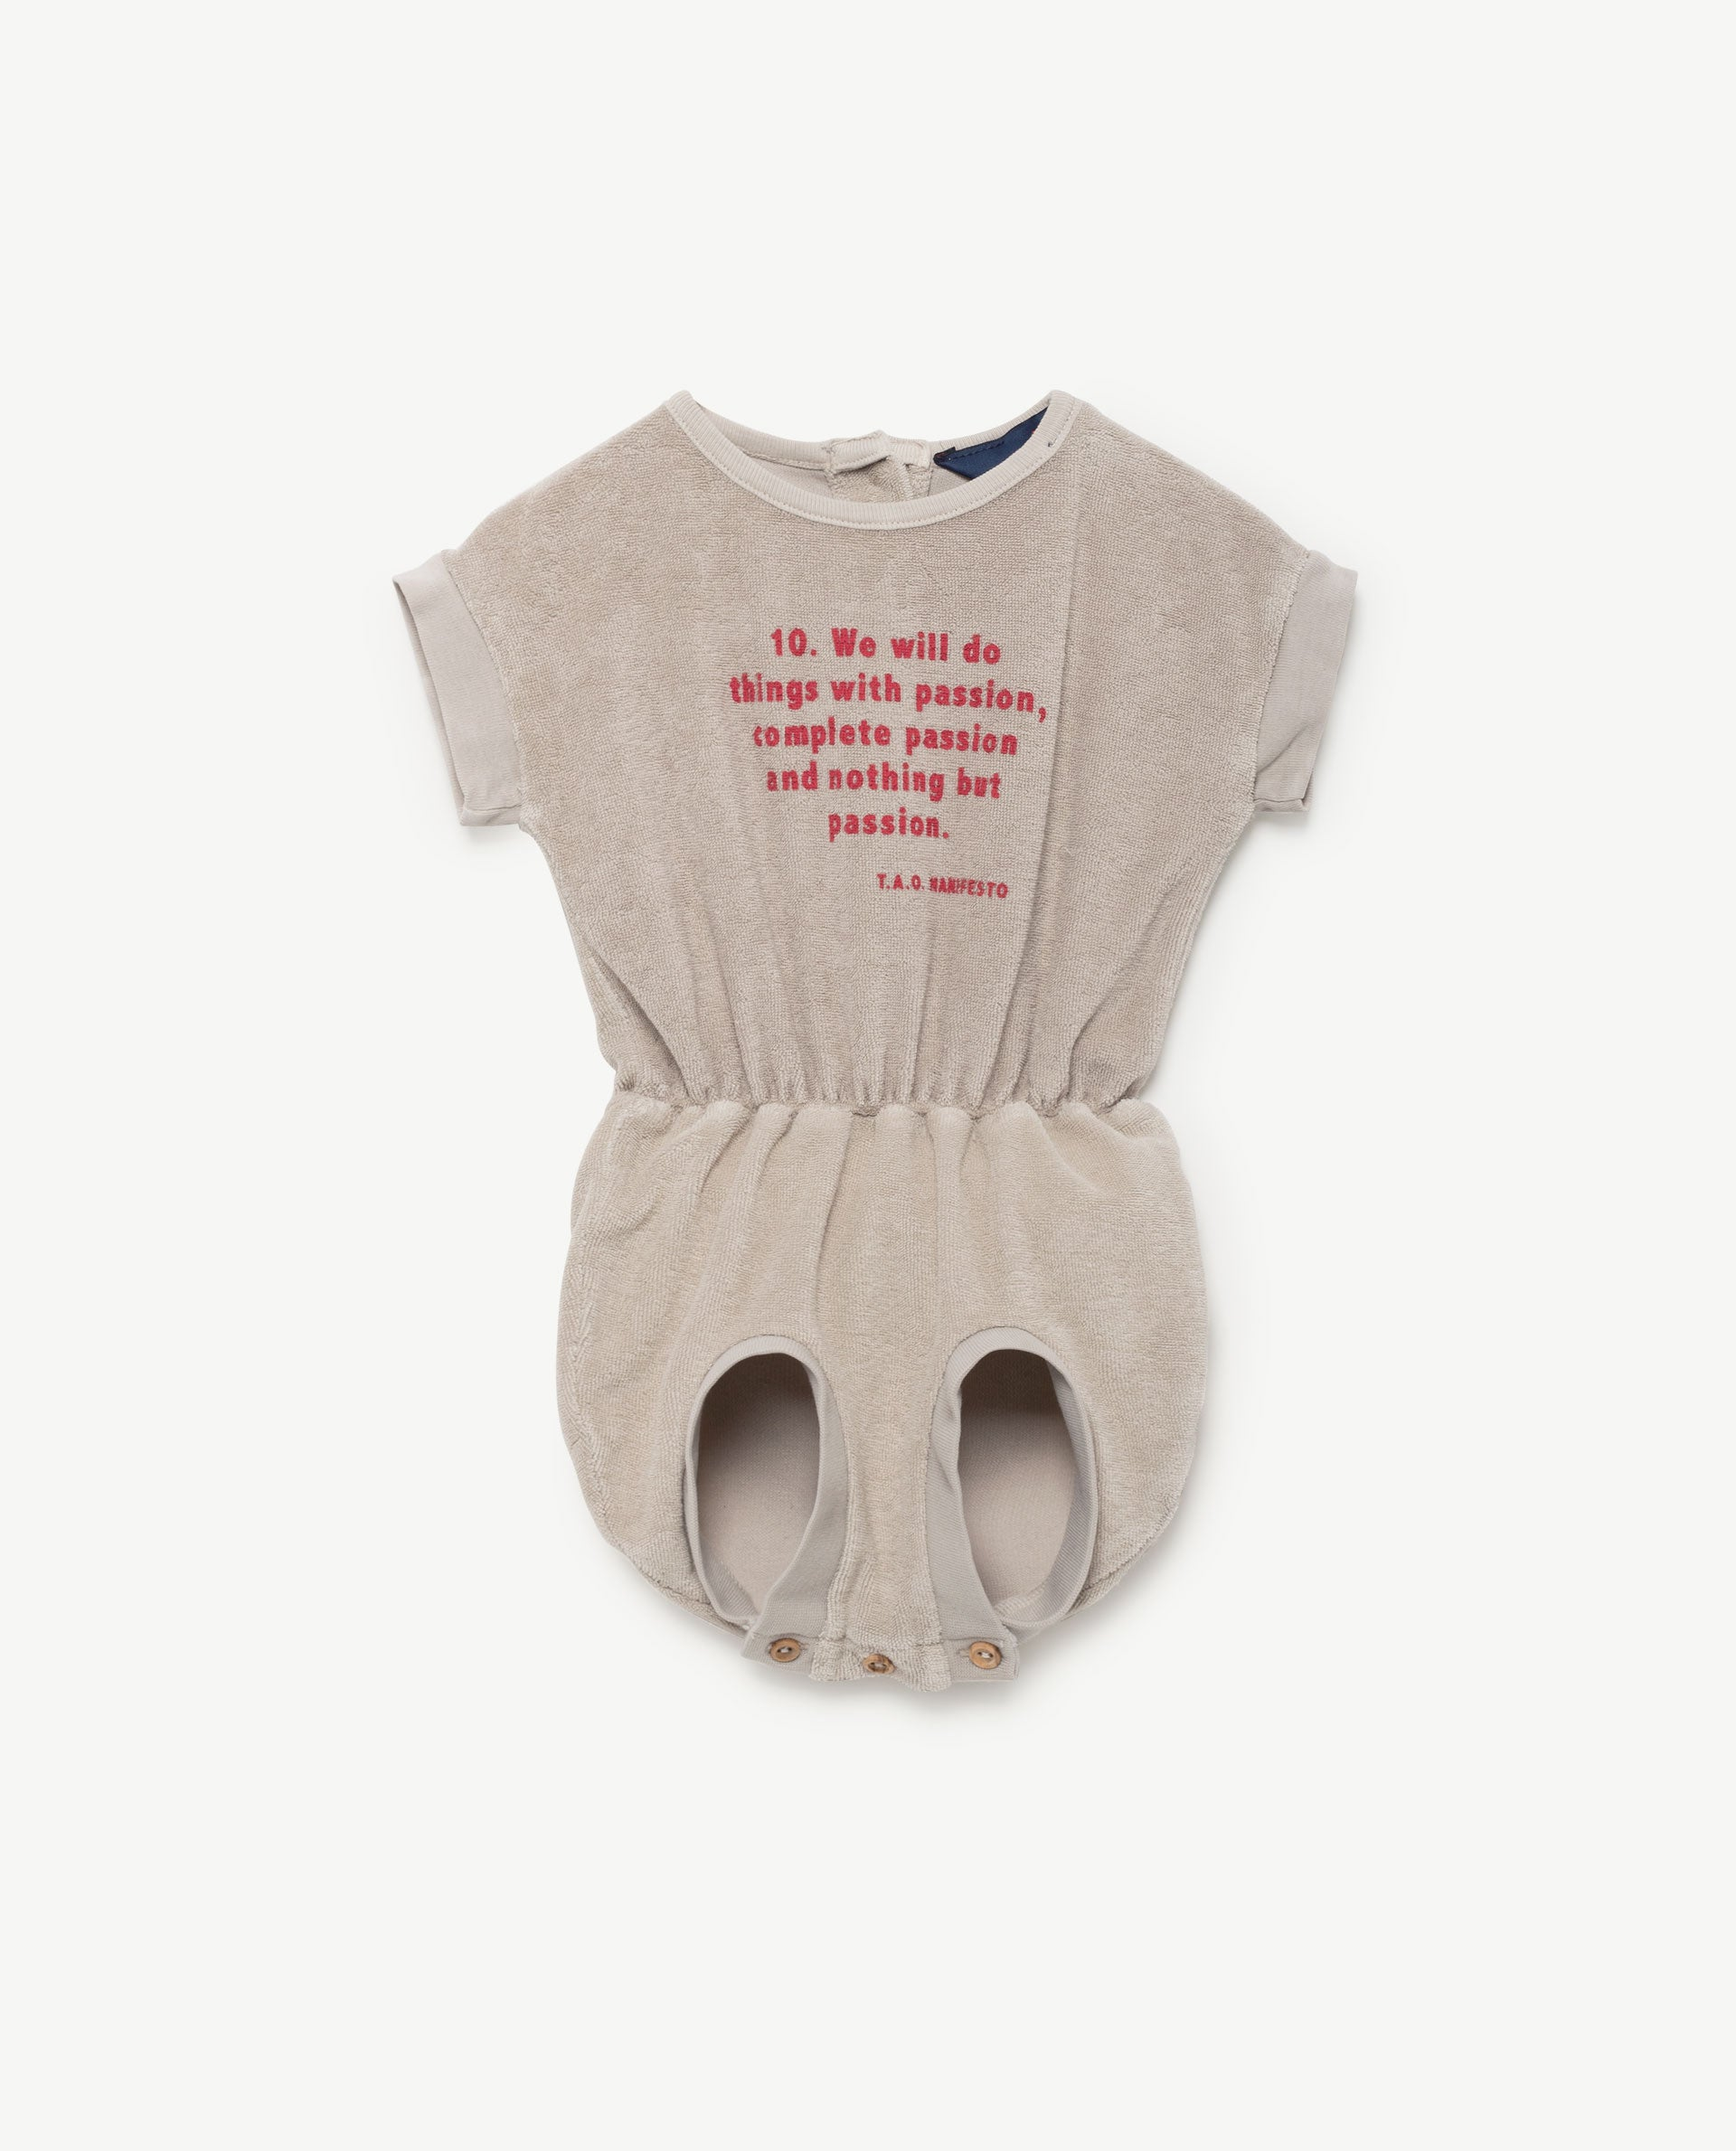 The Animals Observatory Koala Baby Suit in Beige Manifesto | BIEN BIEN